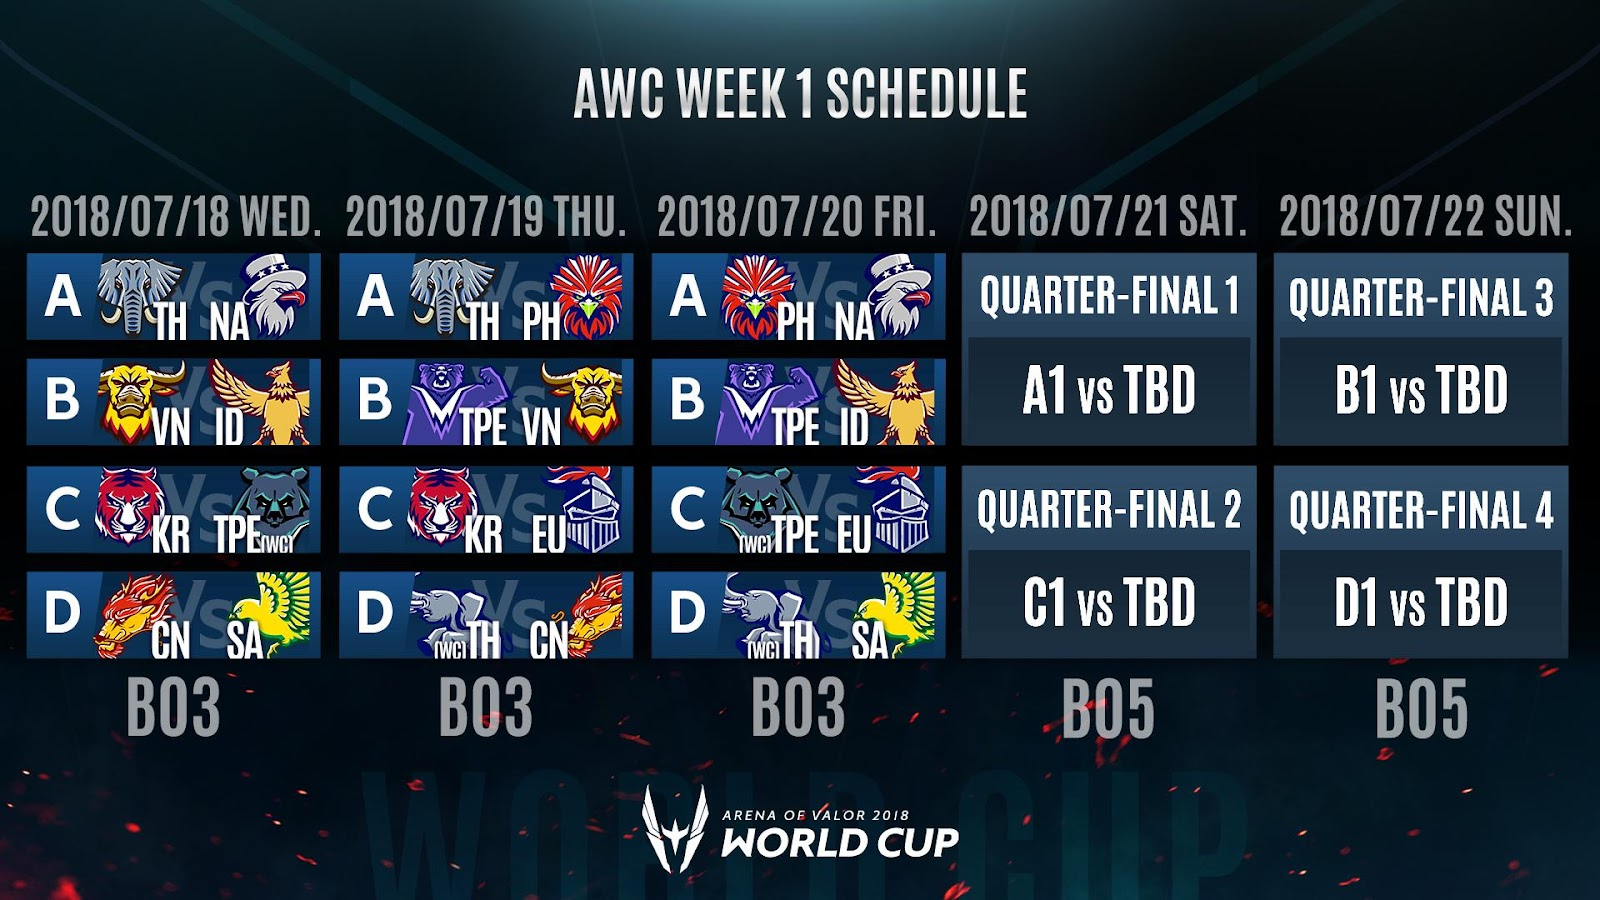 YT-Week 1 Schedule